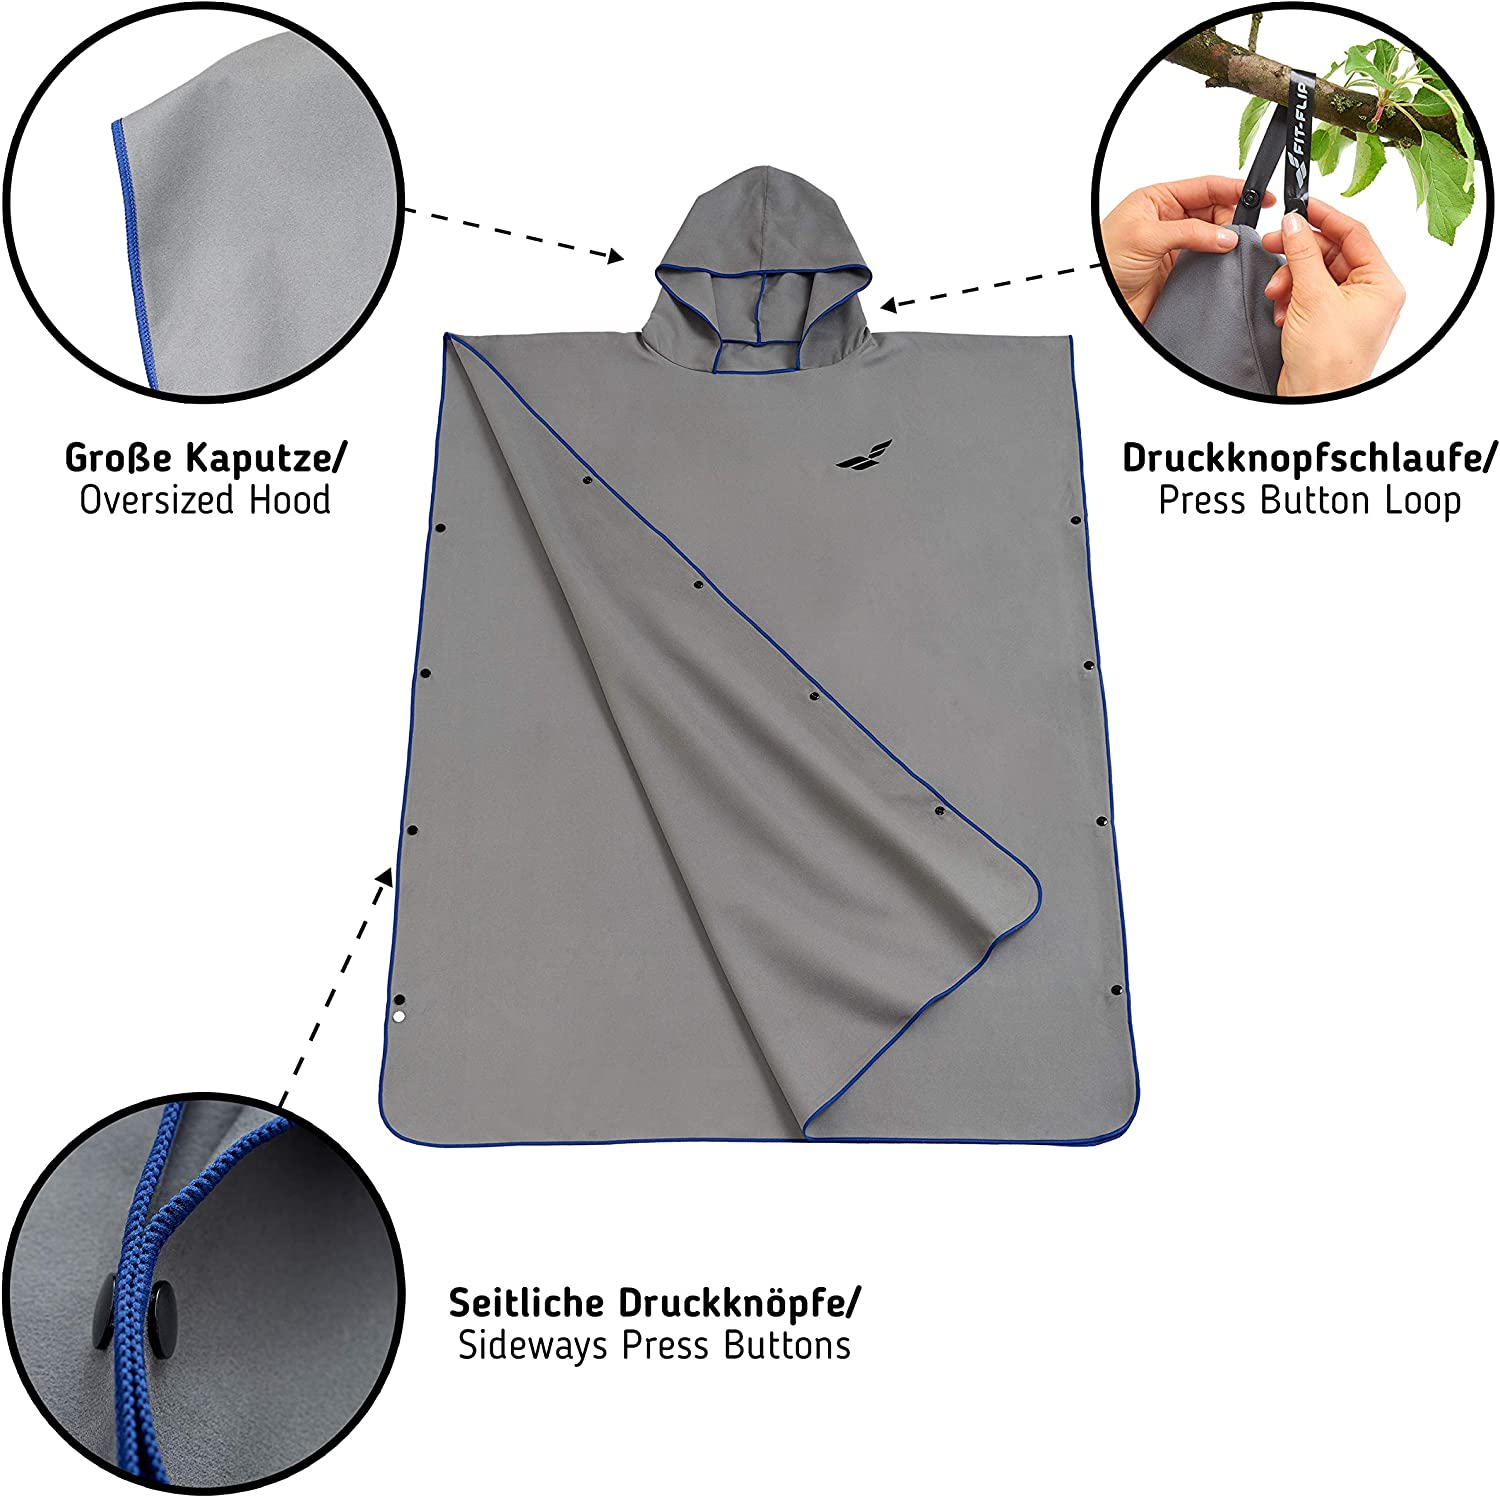 Fit-Flip Changing Robe for Women /& Men Towel Poncho in Microfiber also as Beach Changing Towel Dry Robe Surf Poncho compact and super lightweight